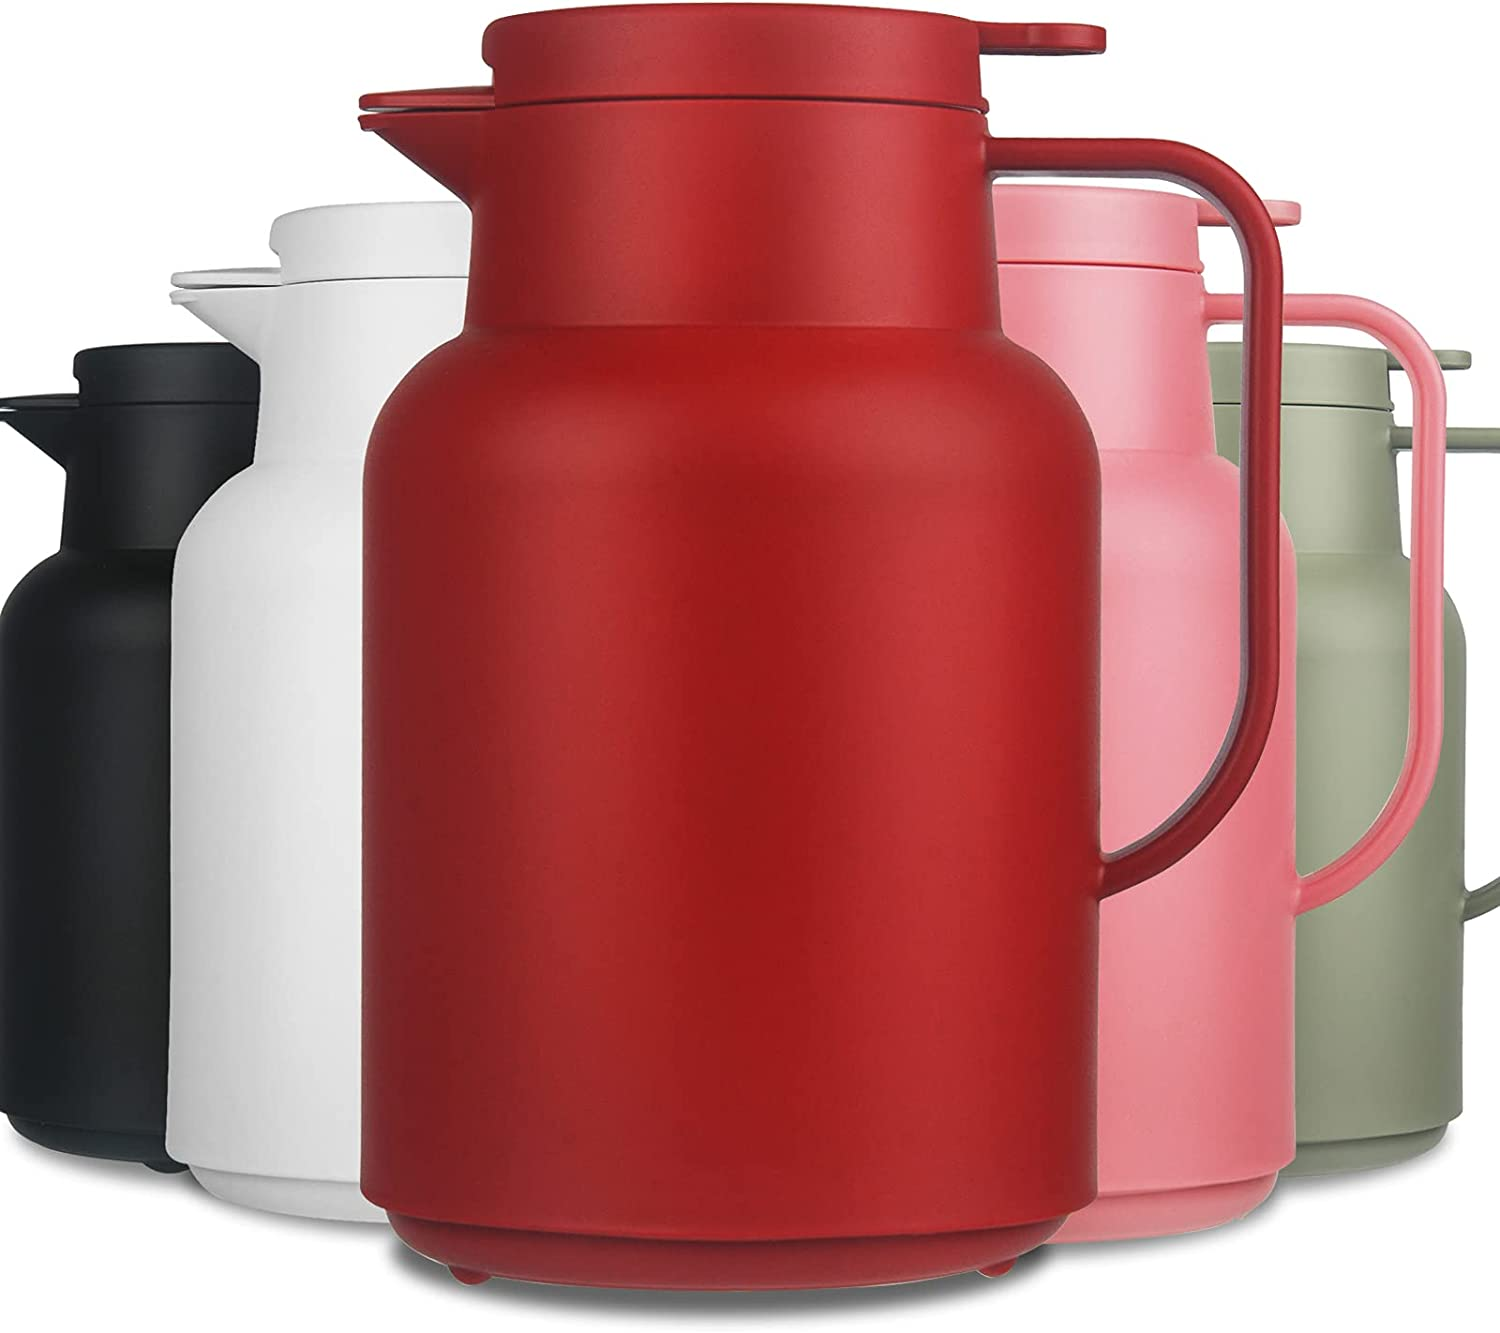 Reeho 50 oz Max 89% OFF Spring new work one after another Thermal Coffee Carafe Liner Vac Walled Glass Double